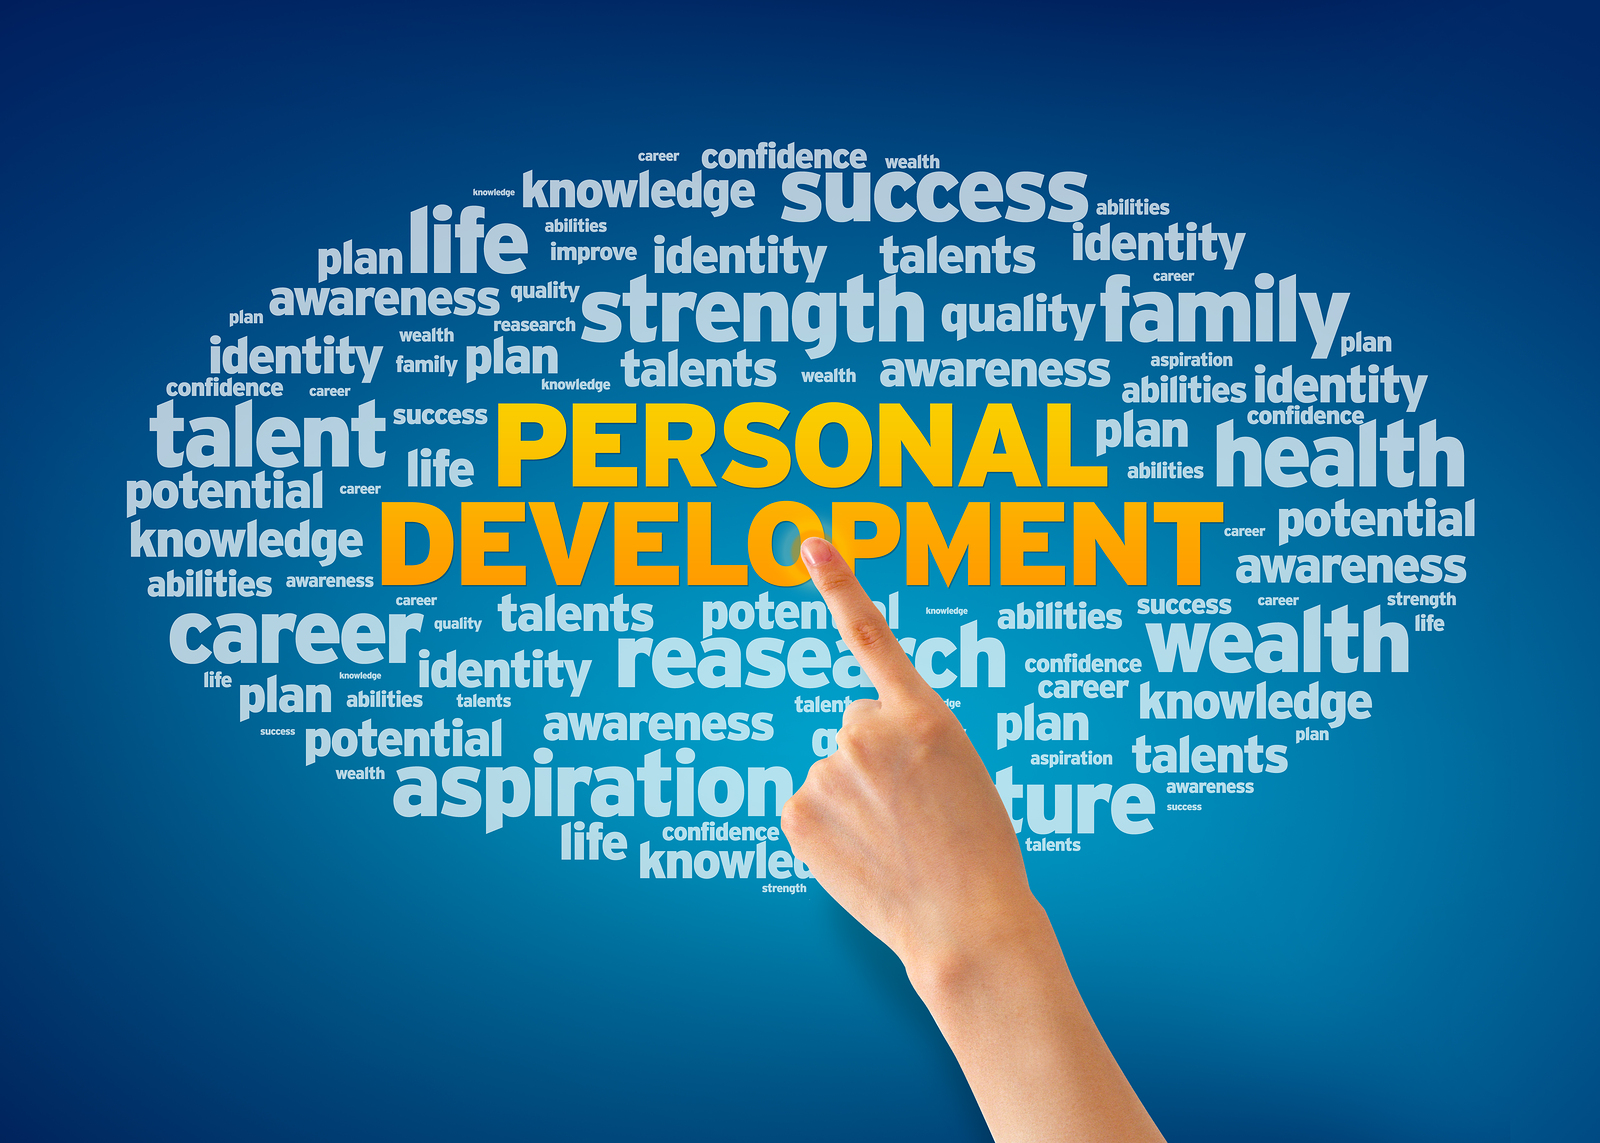 self improvement personal development program tips improving questions grow interested